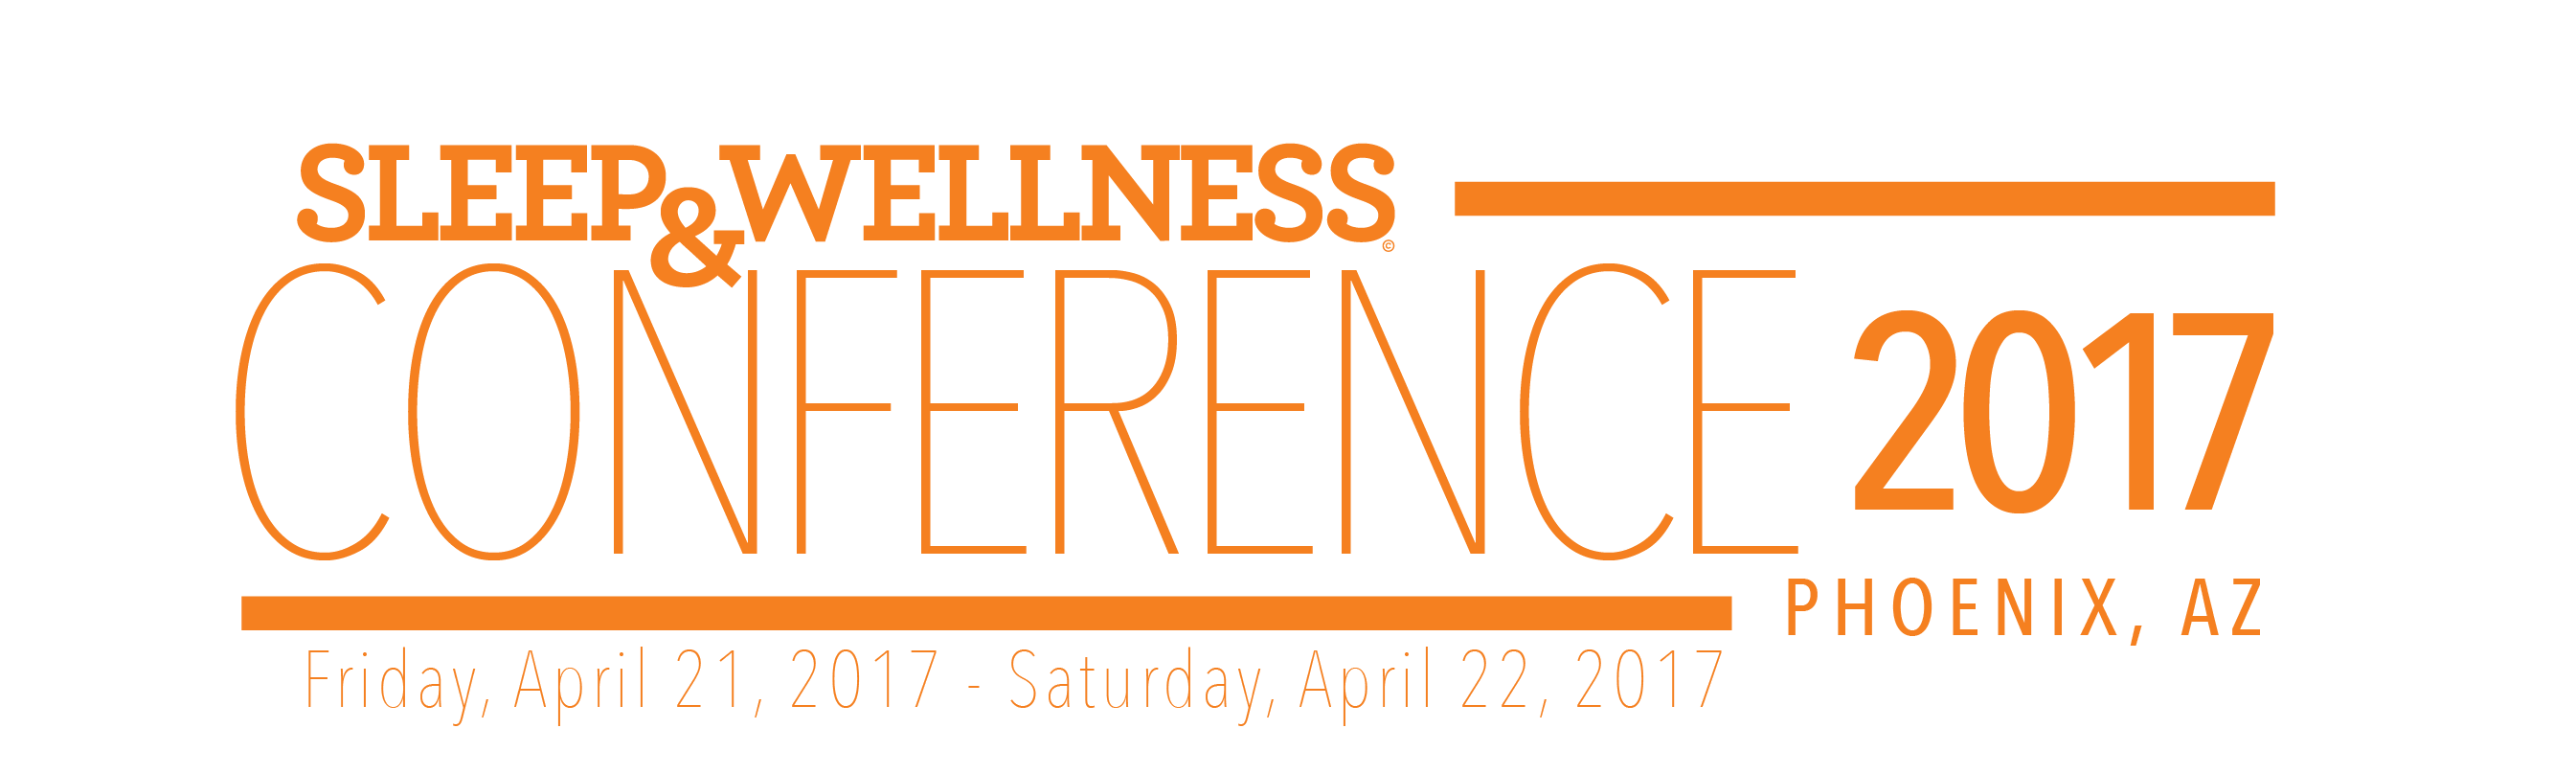 Sleep & Wellness 2017:  The Premier Conference for Sleep Health Professionals